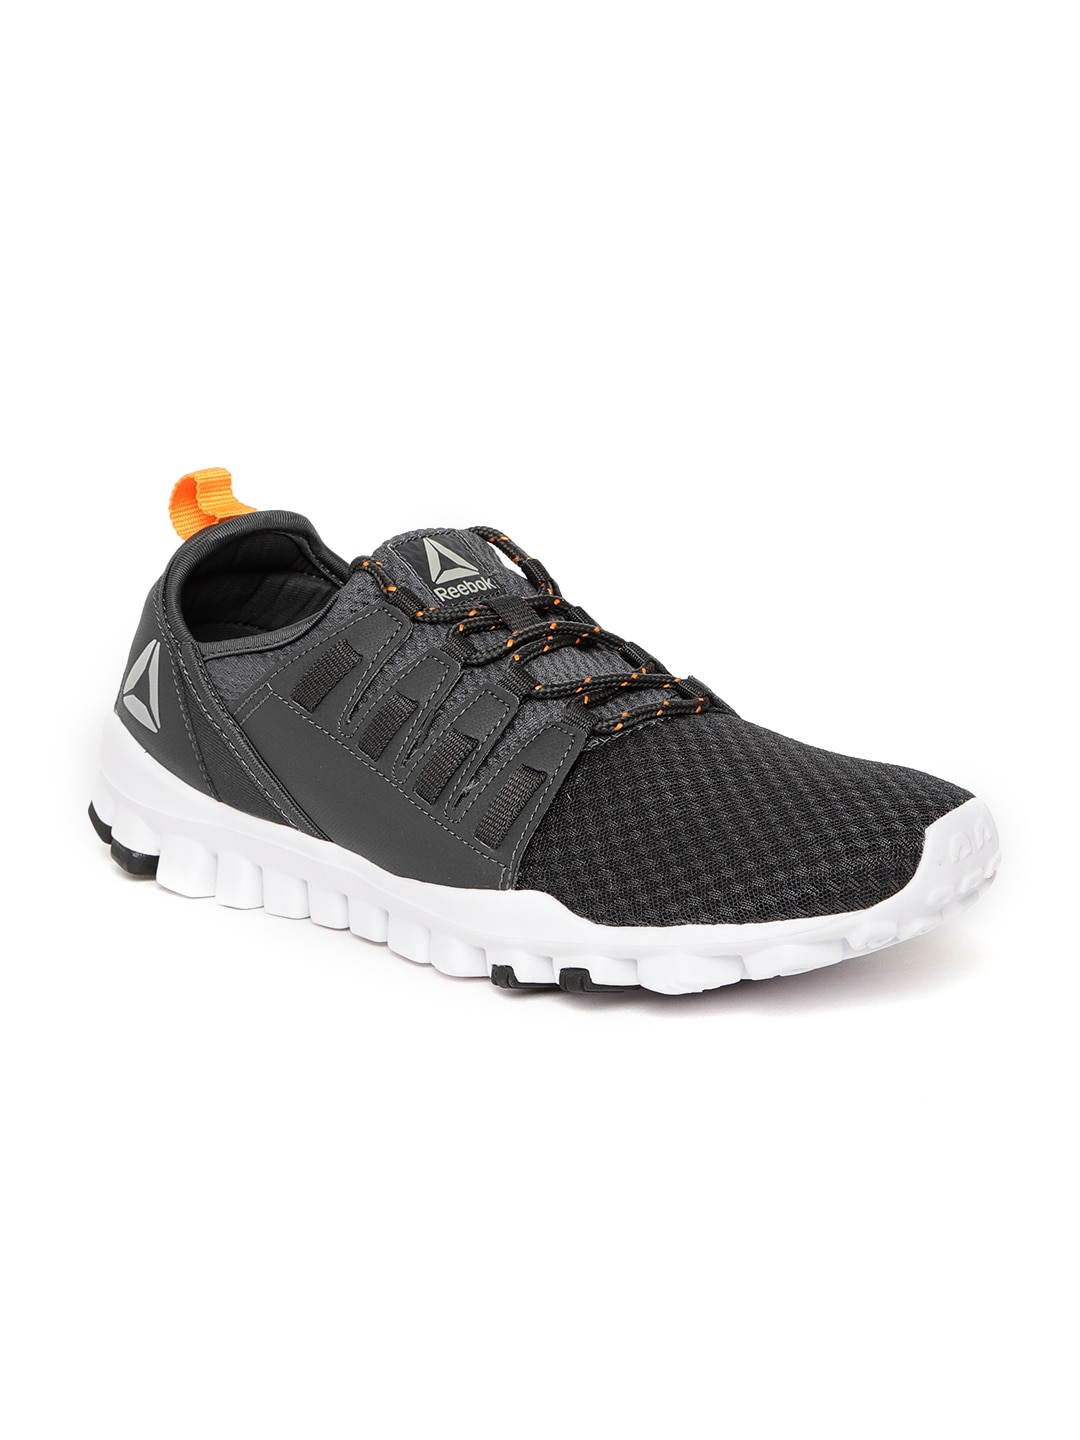 c4afe74be12 Sports Shoes - Buy Sport Shoes For Men   Women Online